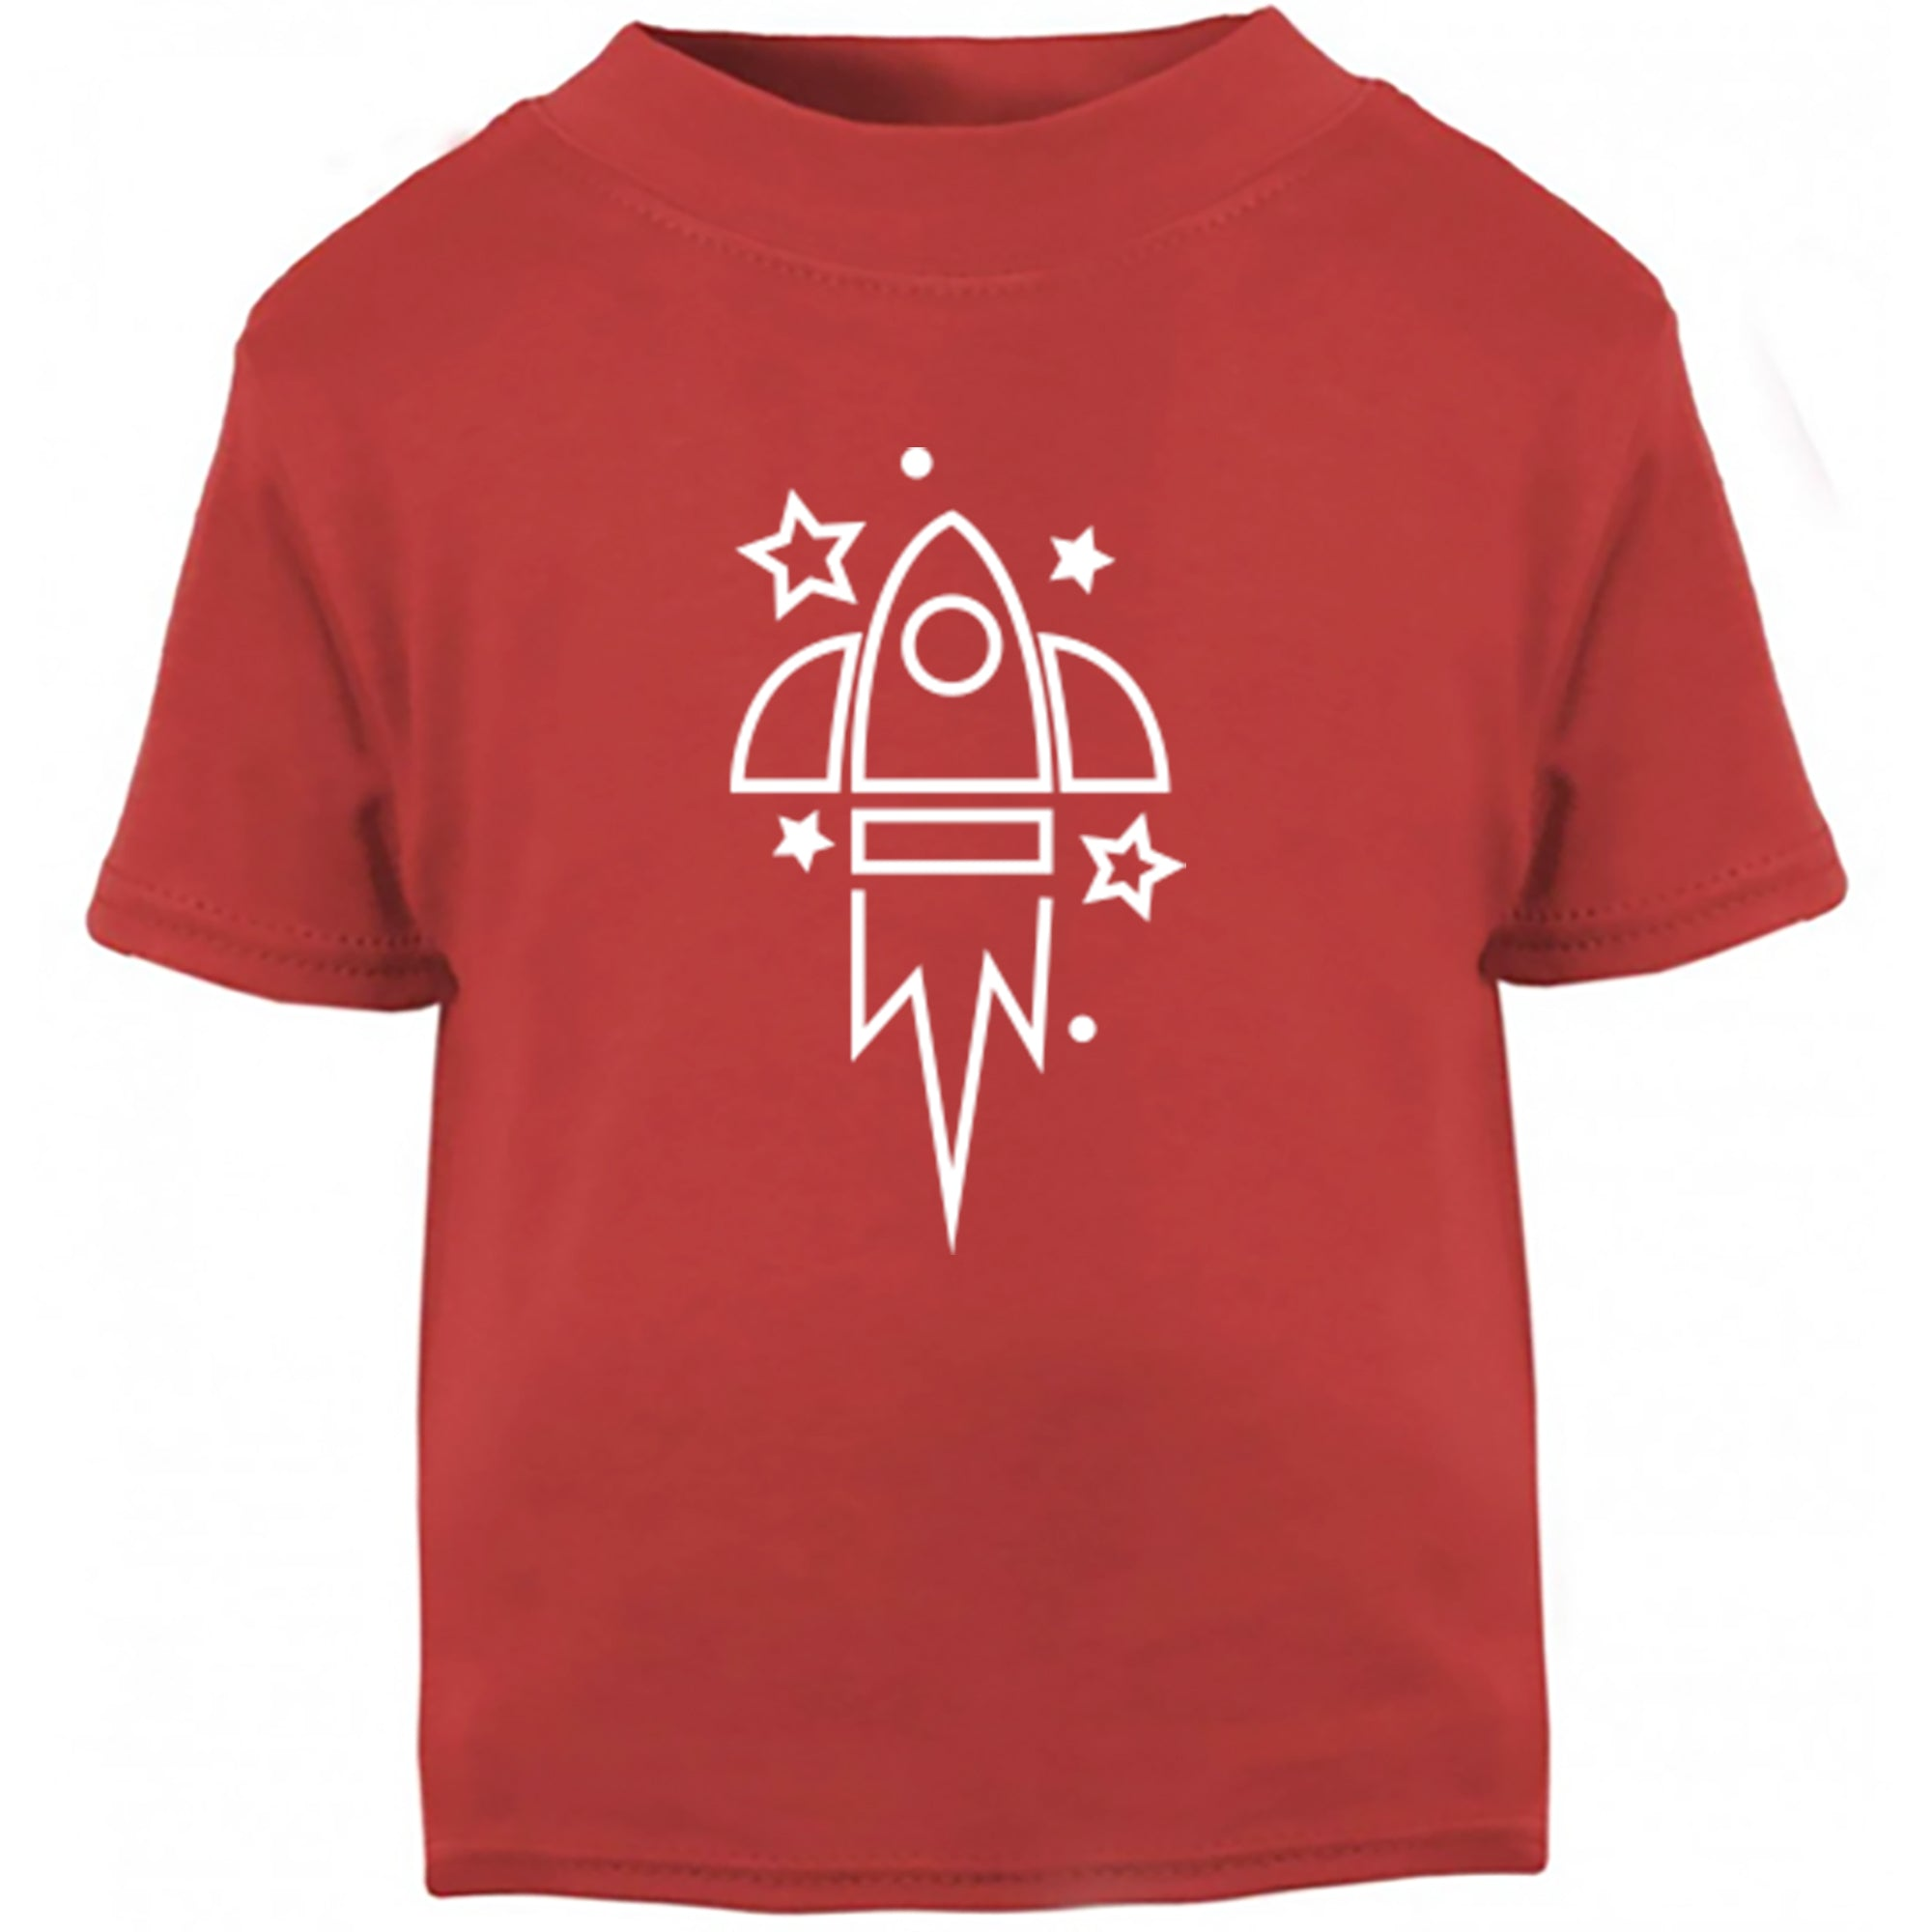 Rocket Ship Childrens Ages 3/4-12/14 Unisex Fit T-Shirt S0361 - Illustrated Identity Ltd.